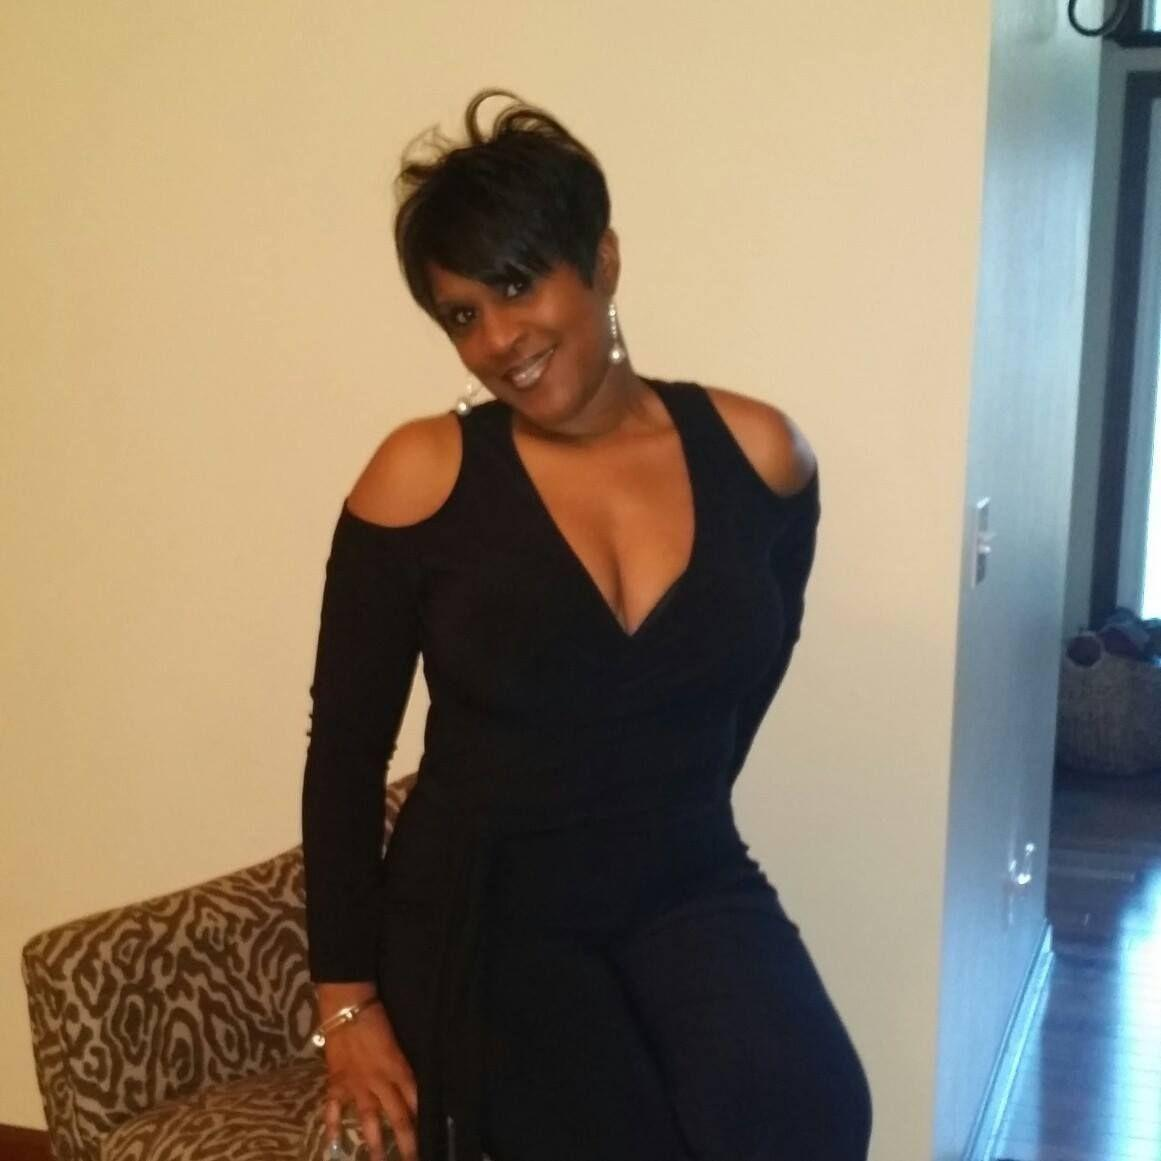 inkster single women Meet catholic singles in inkster, michigan online & connect in the chat rooms dhu is a 100% free dating site to find single catholics.